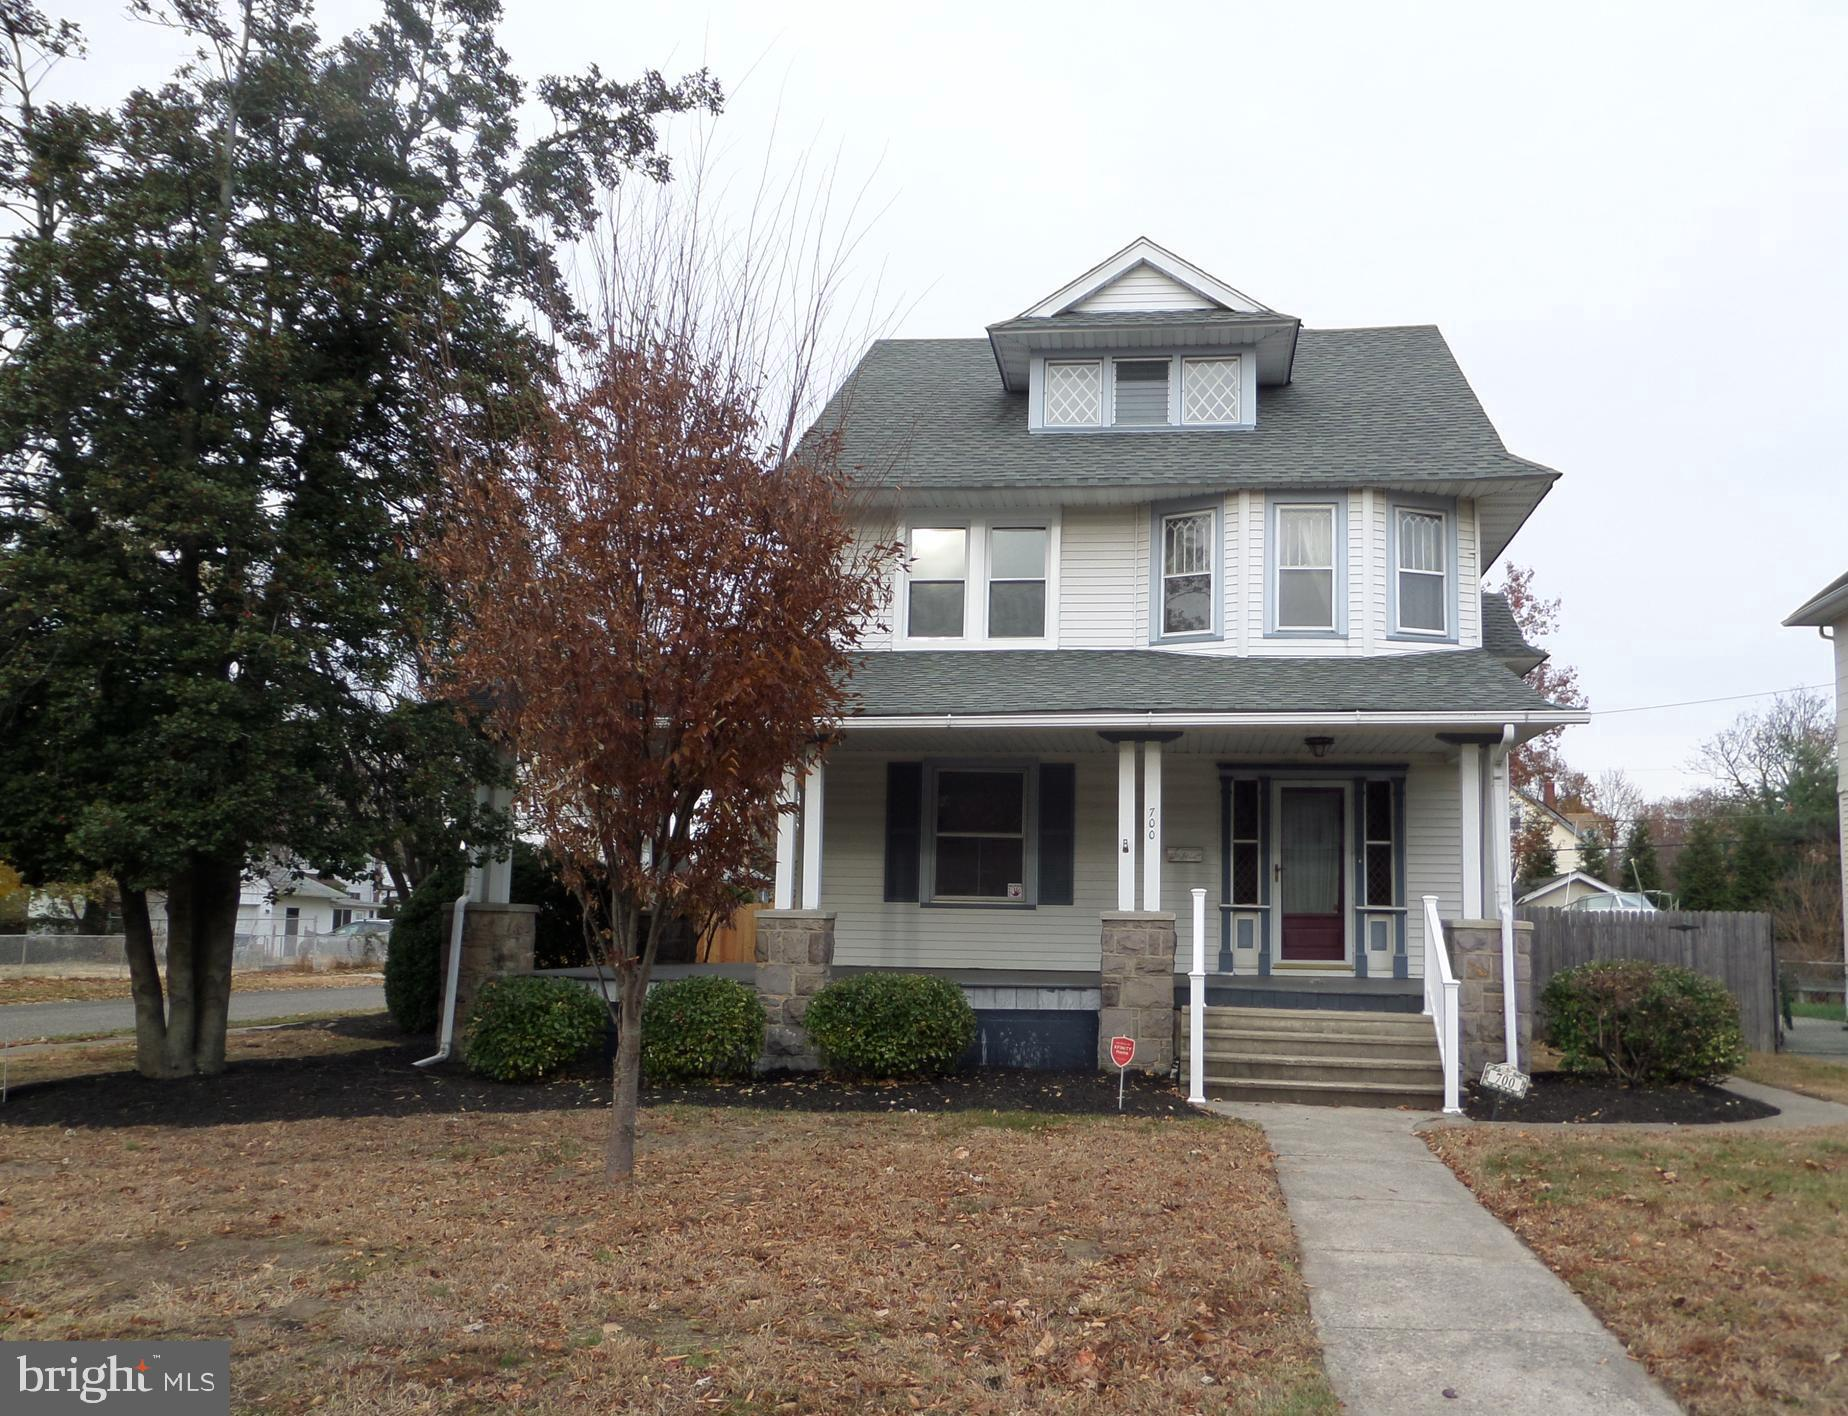 700 WASHINGTON AVENUE, PALMYRA, NJ 08065